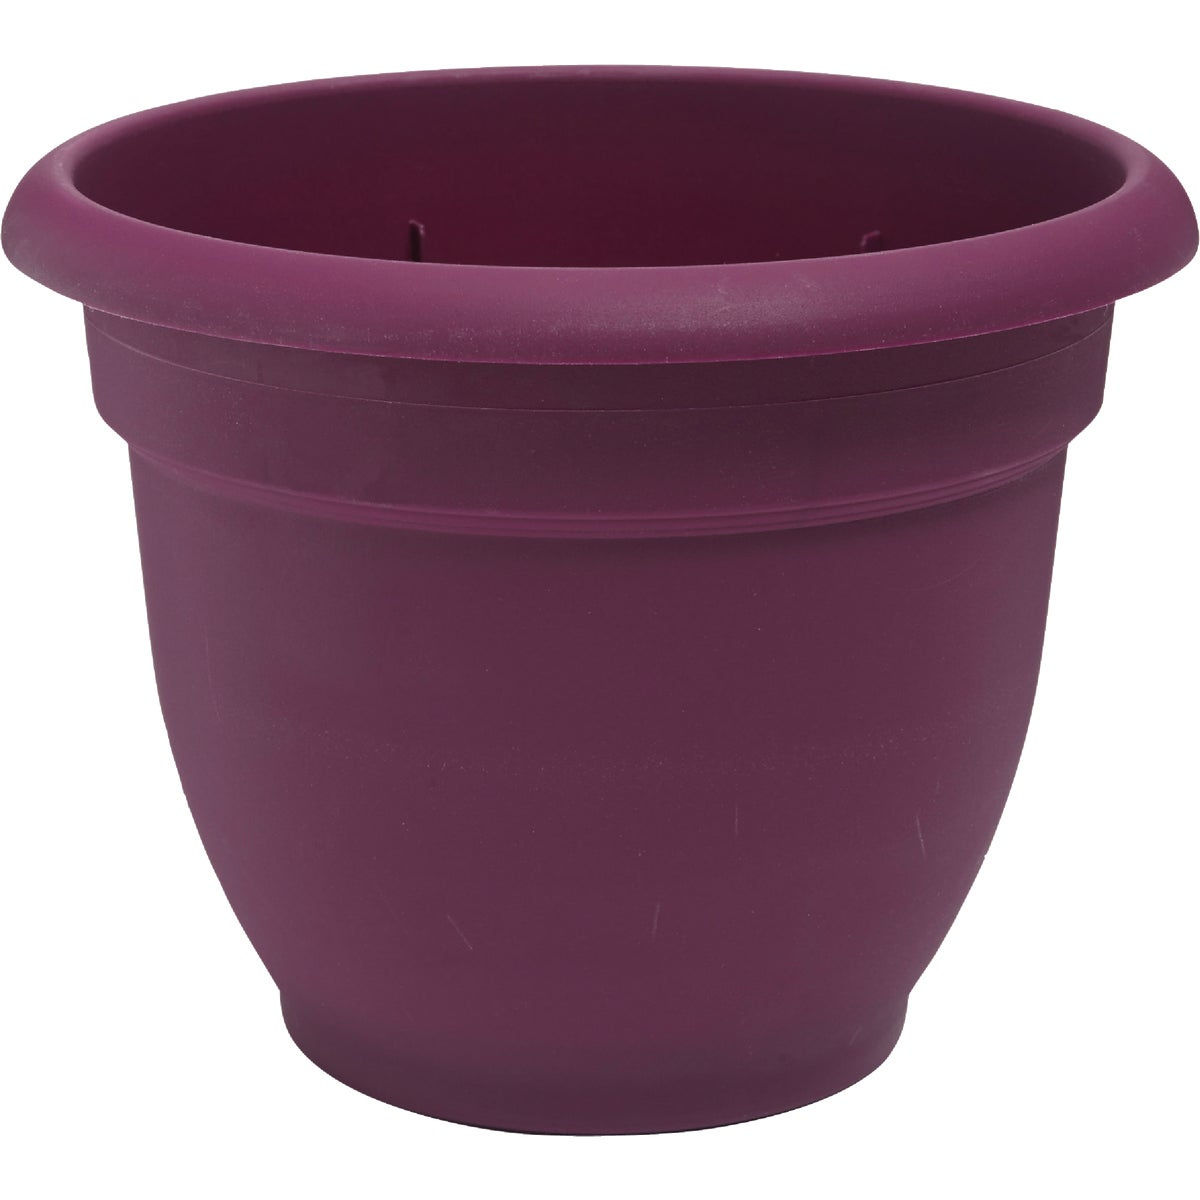 "10"" RYL LILAC ARIANA POT - 462101-1001 by Fiskars Brands Inc"